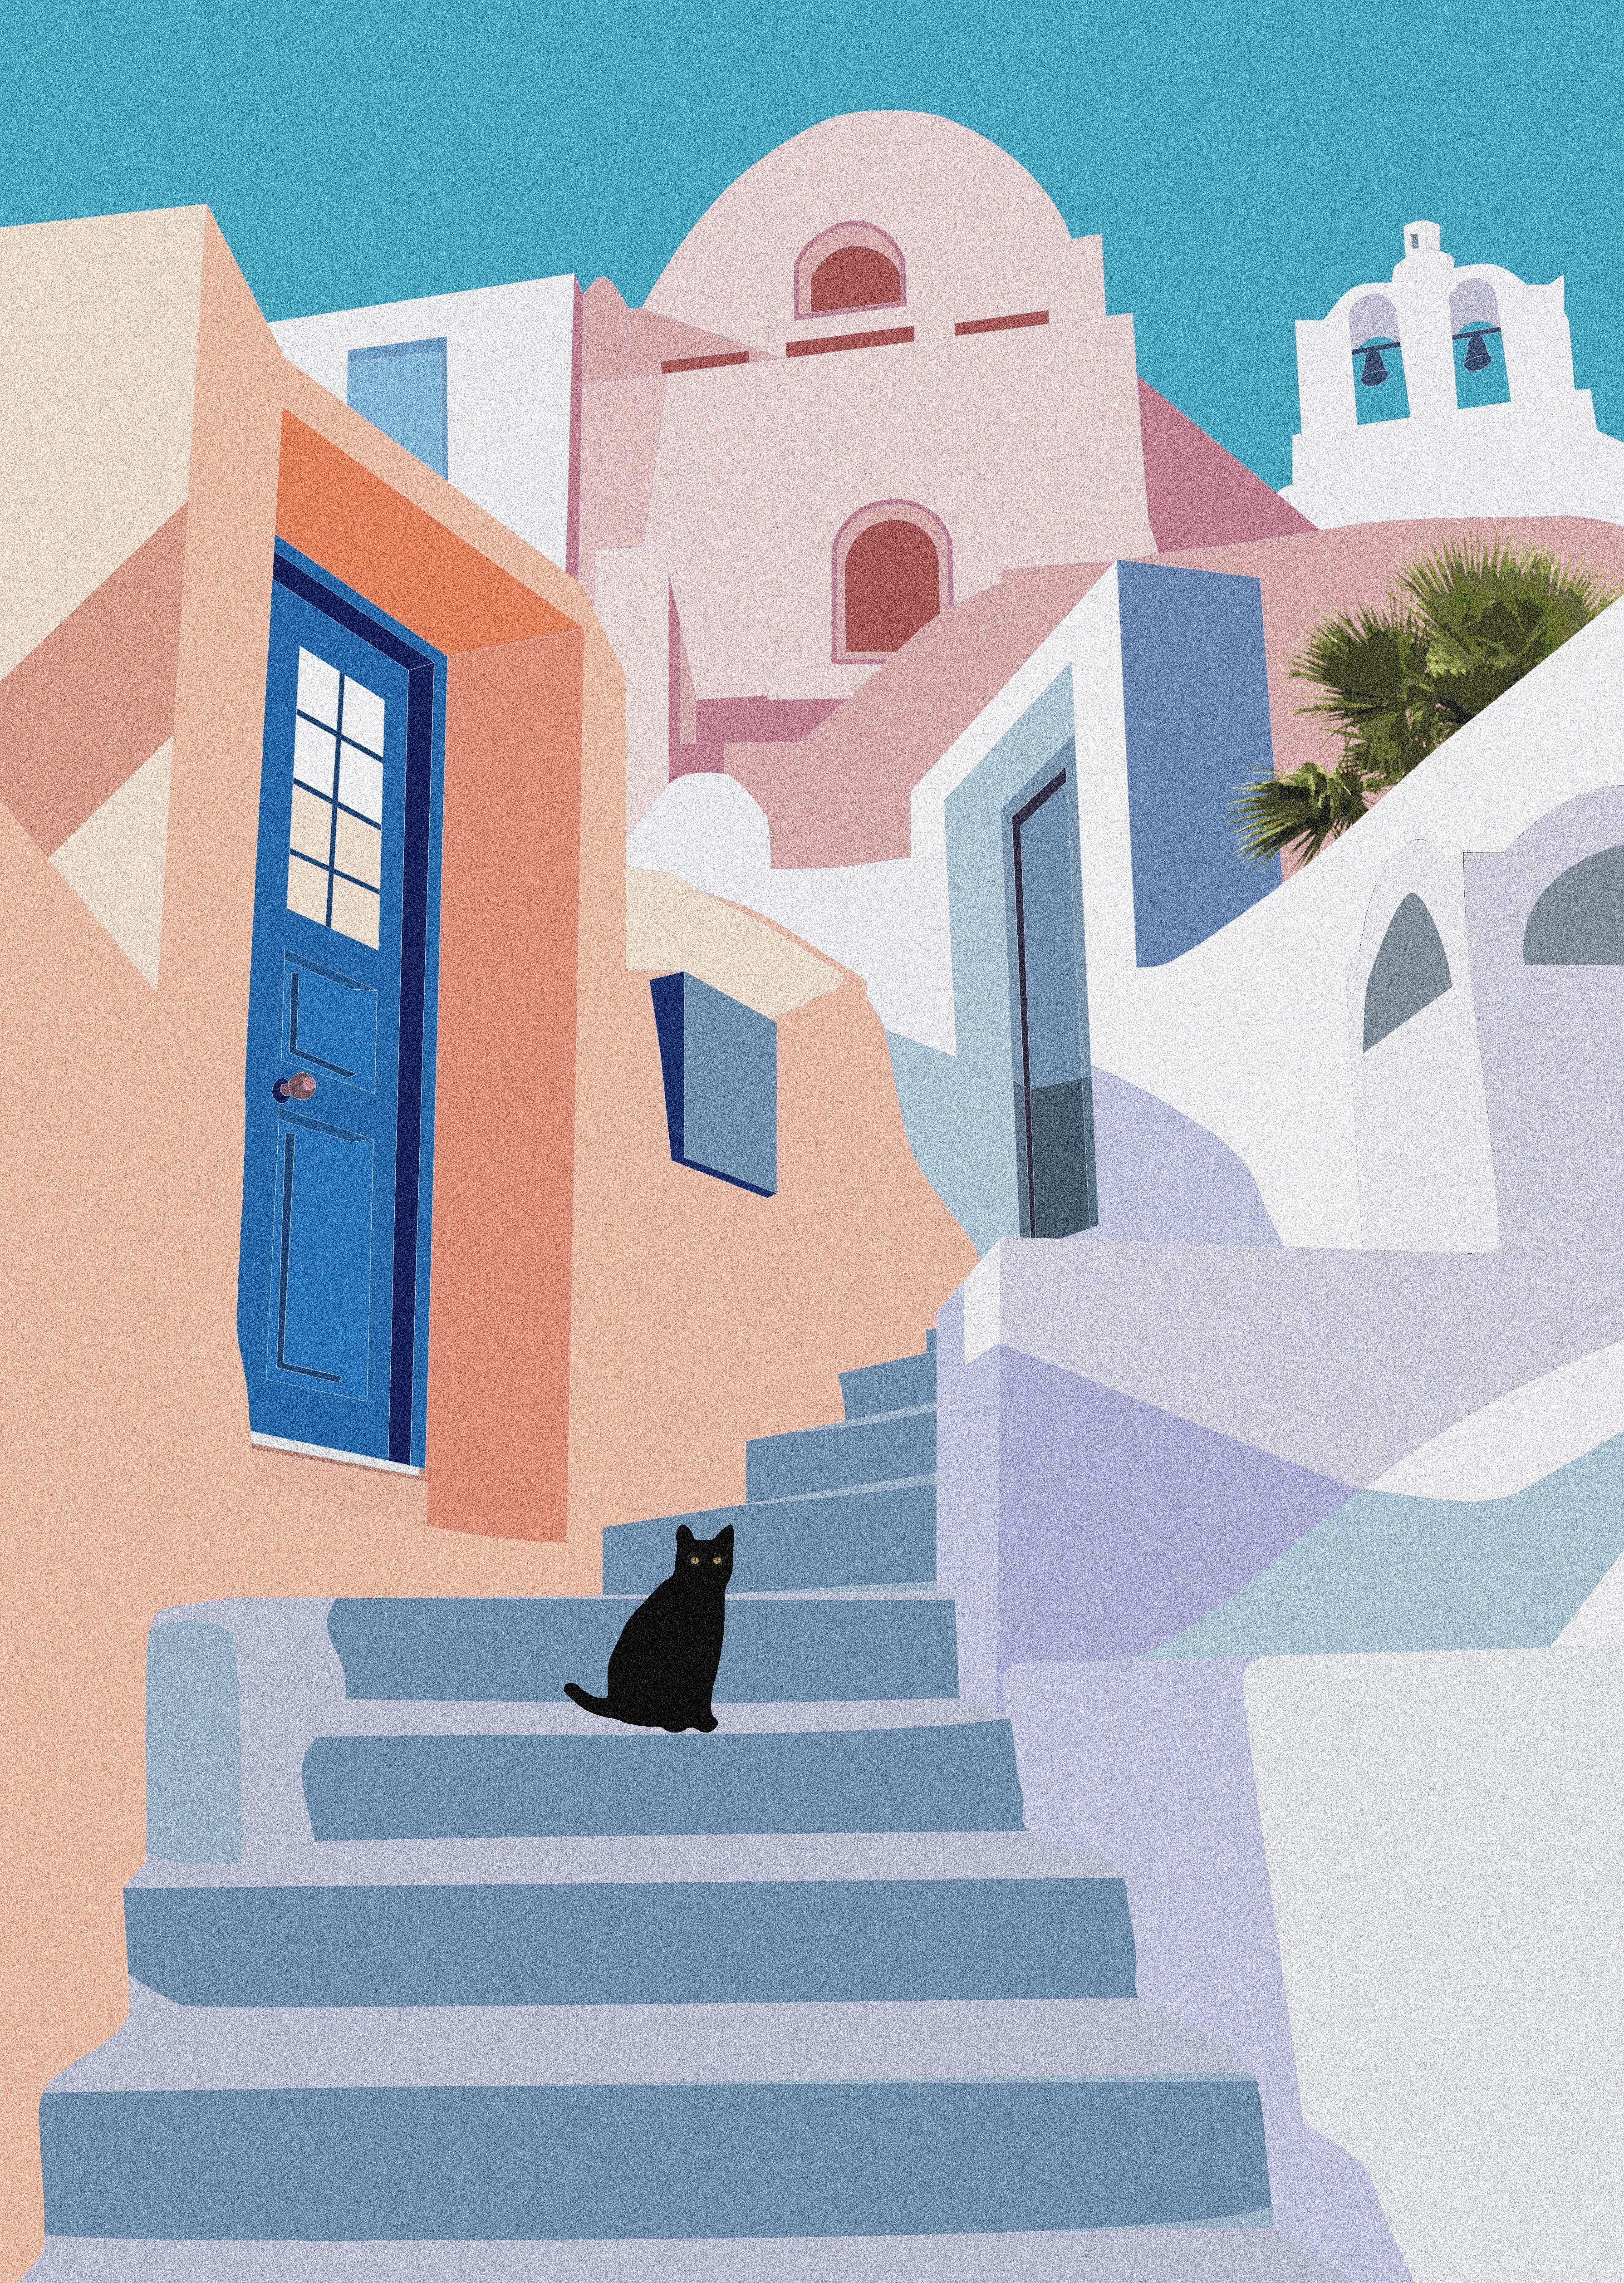 Santorini Cat Print, A4/A3, Geometric Art, Travel Poster, Pastels, Architecture, Greece, Minimal, Island, Tropical, Home Decor, Wall Art ในปี 2020